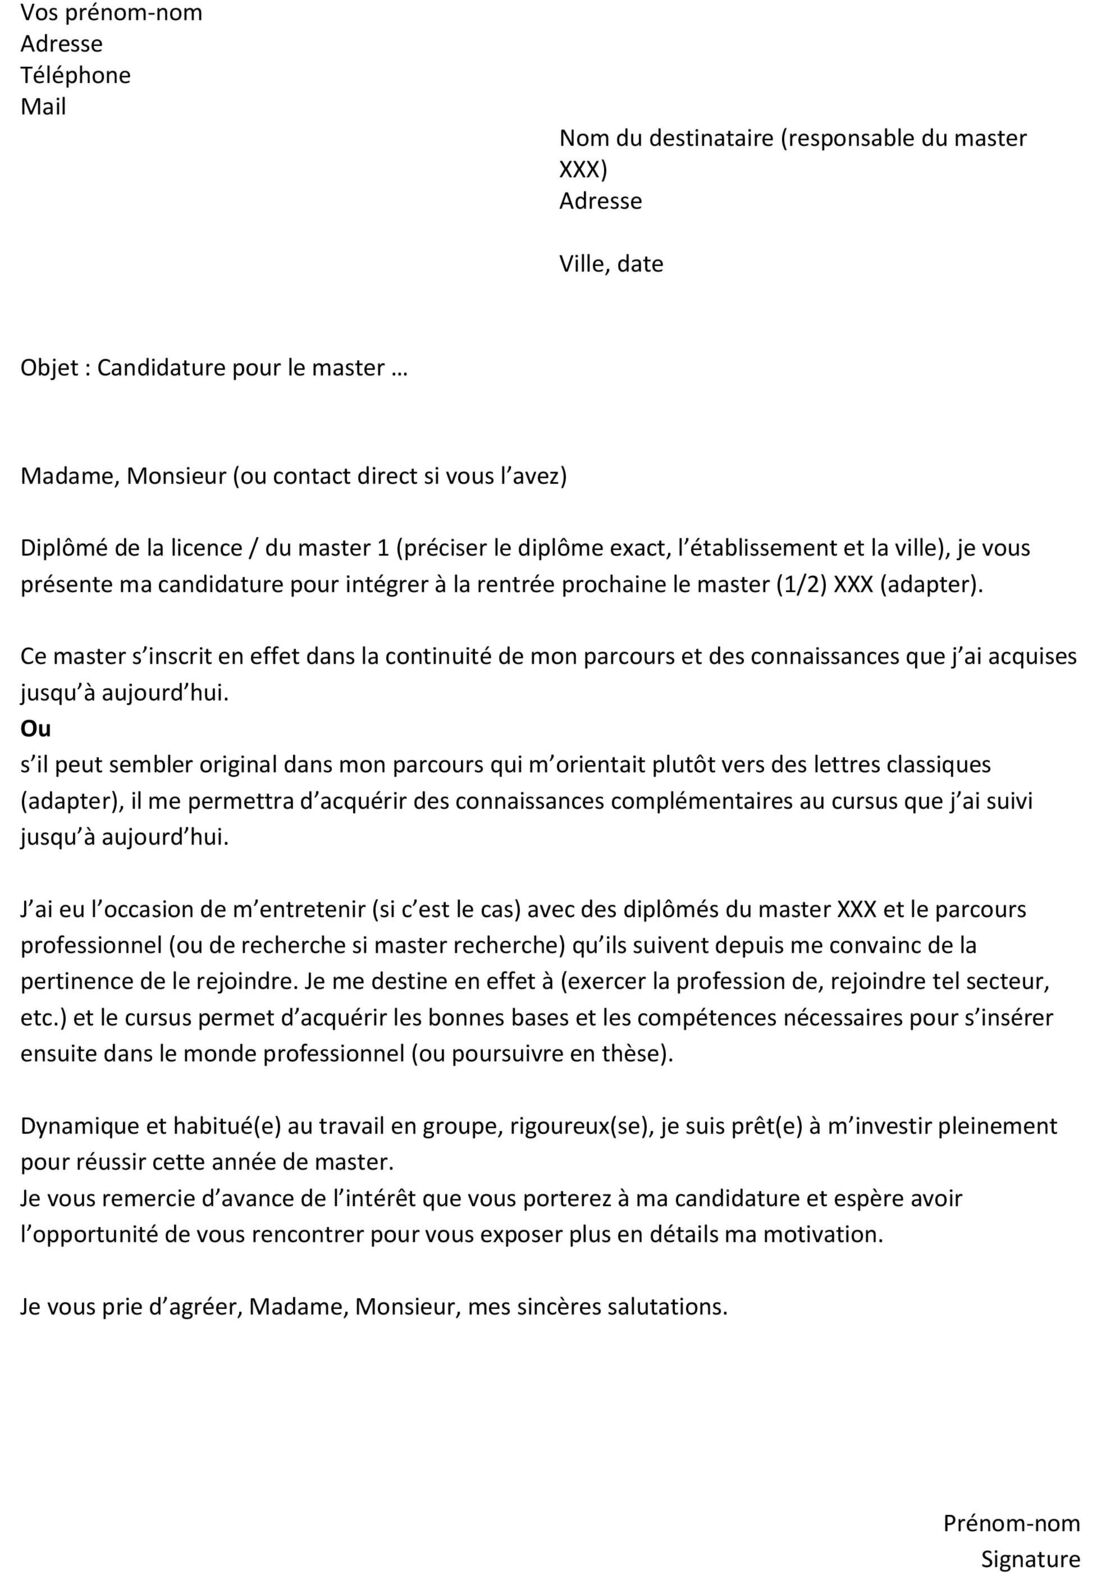 exemple de note dinformation au personnel